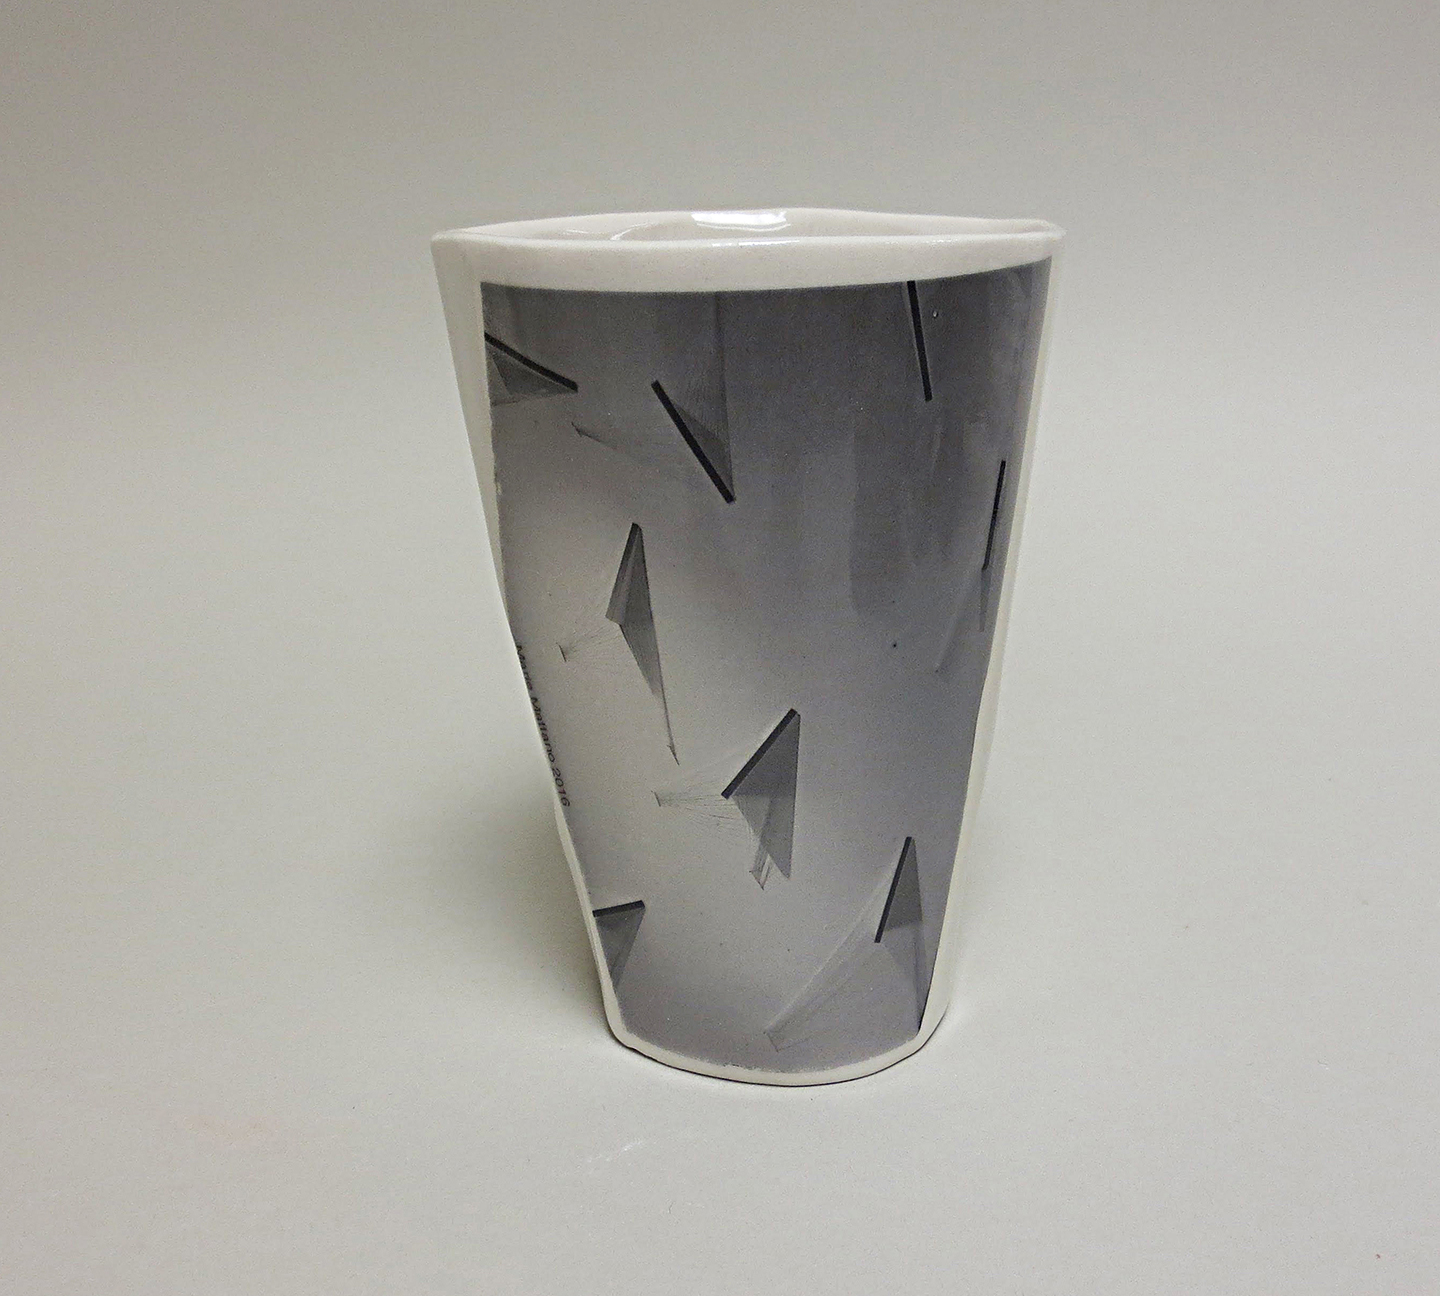 Collabo Cup 1st generation: Marie (front view)